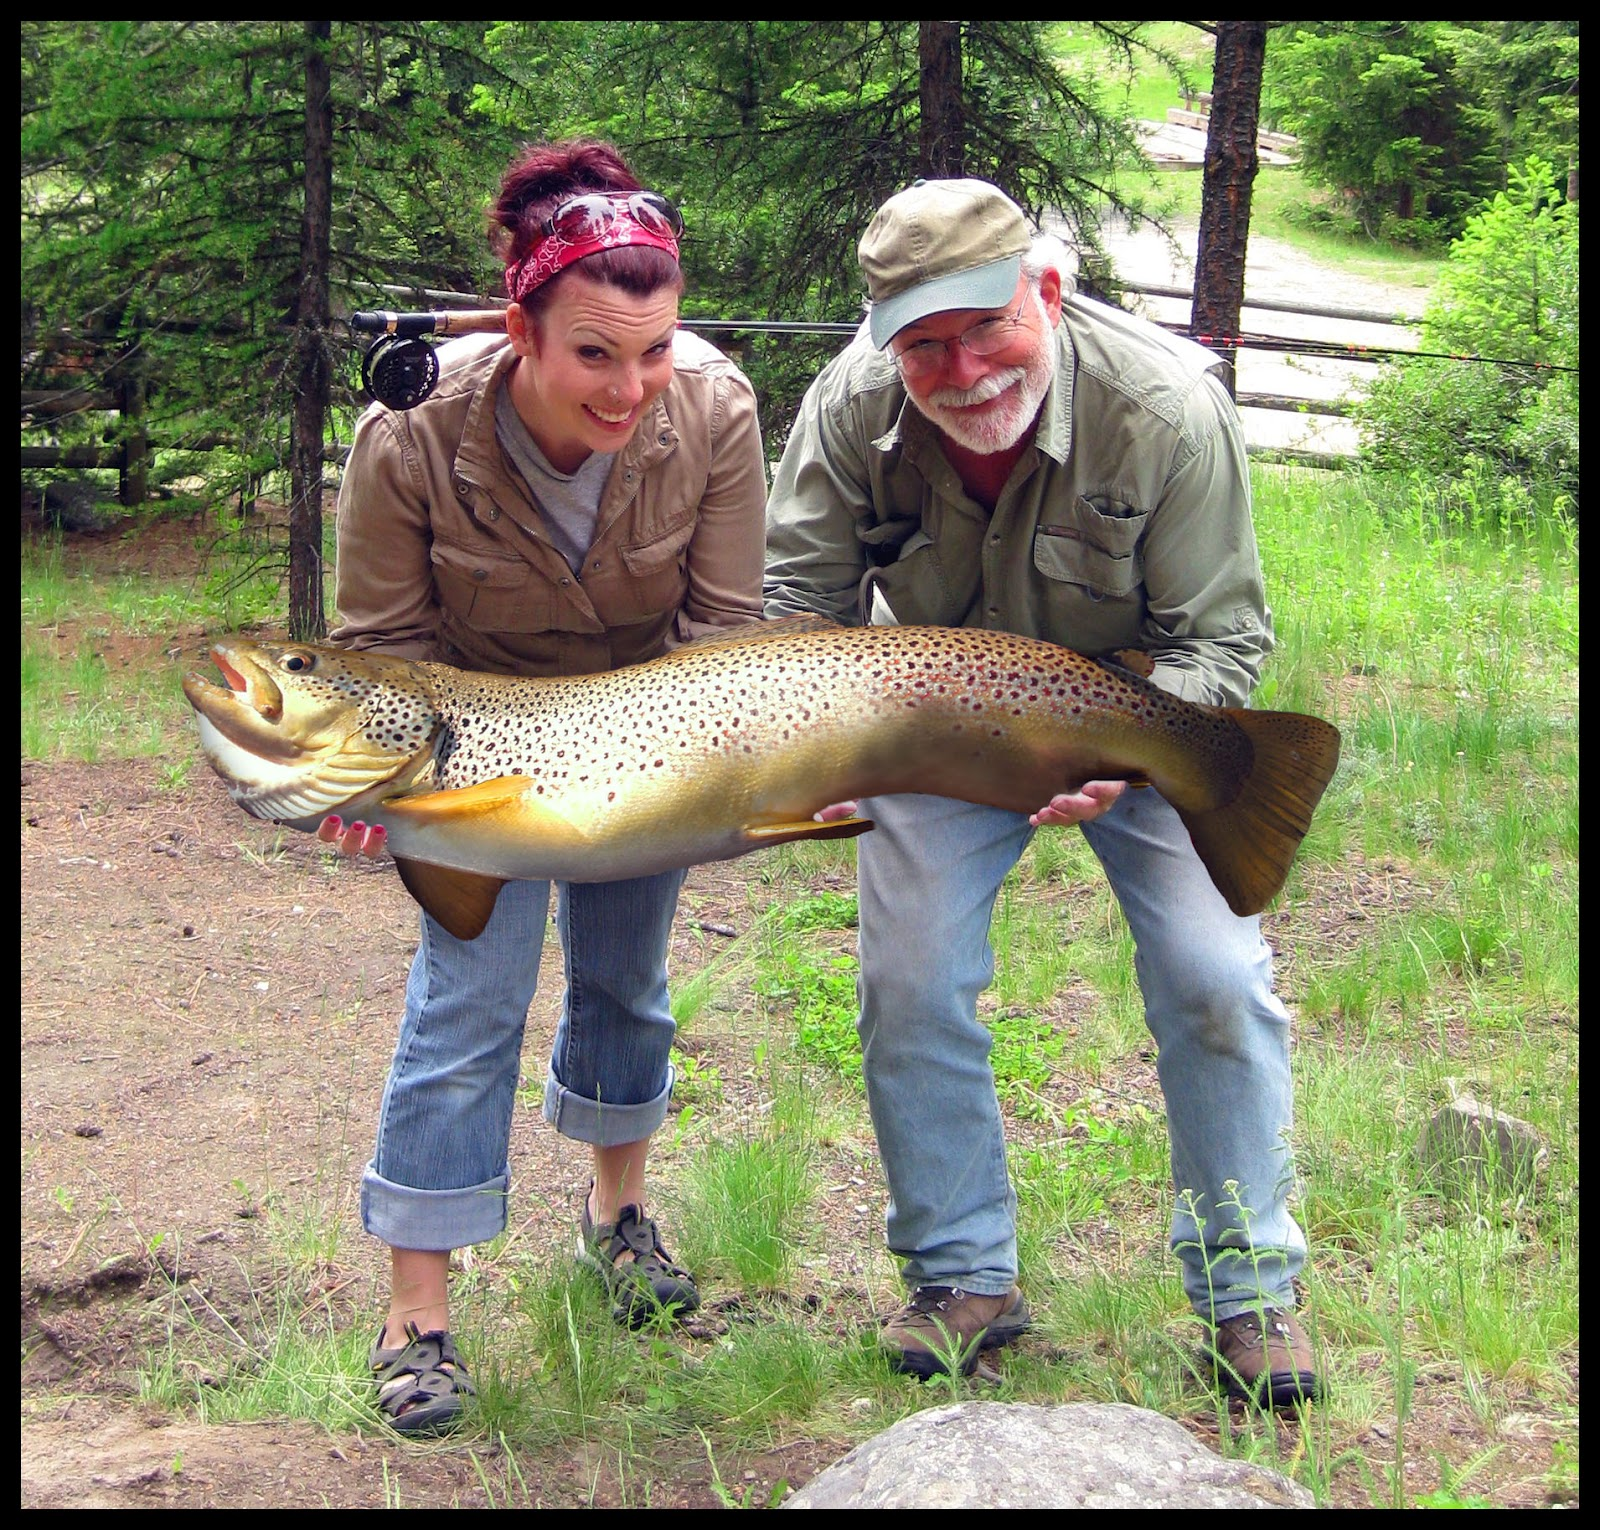 Home Waters: A Fly Fishing Life: About Me